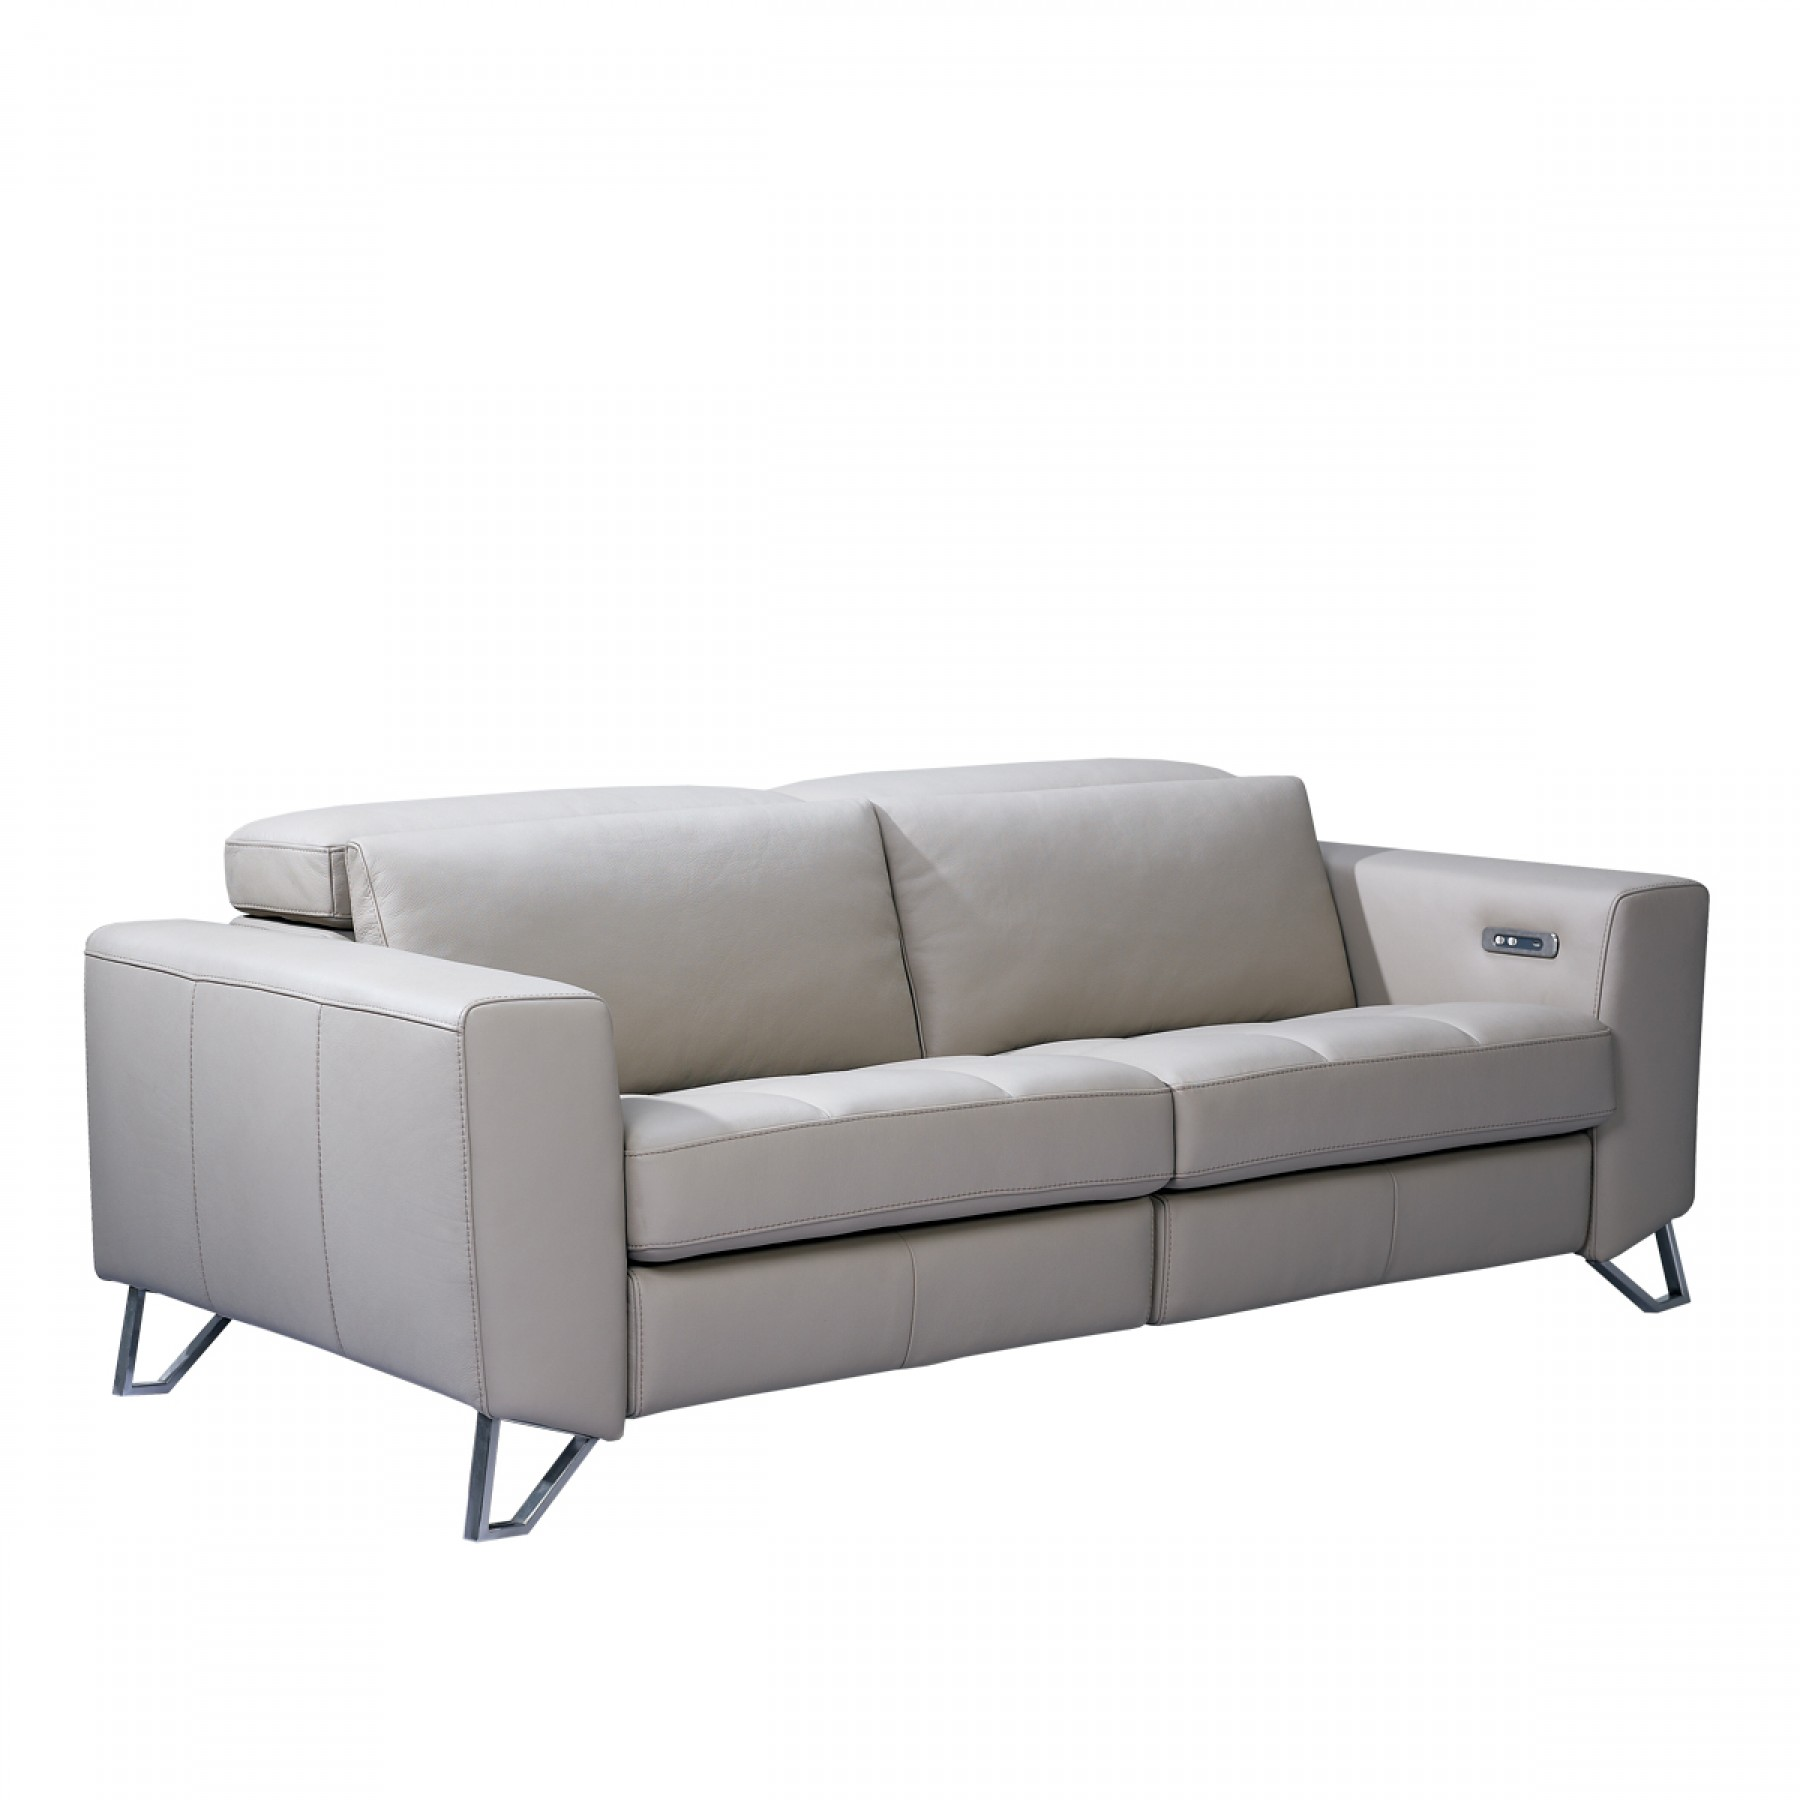 APERTO-3-SEATER-RECLINER-LEATHER-SOFA-2